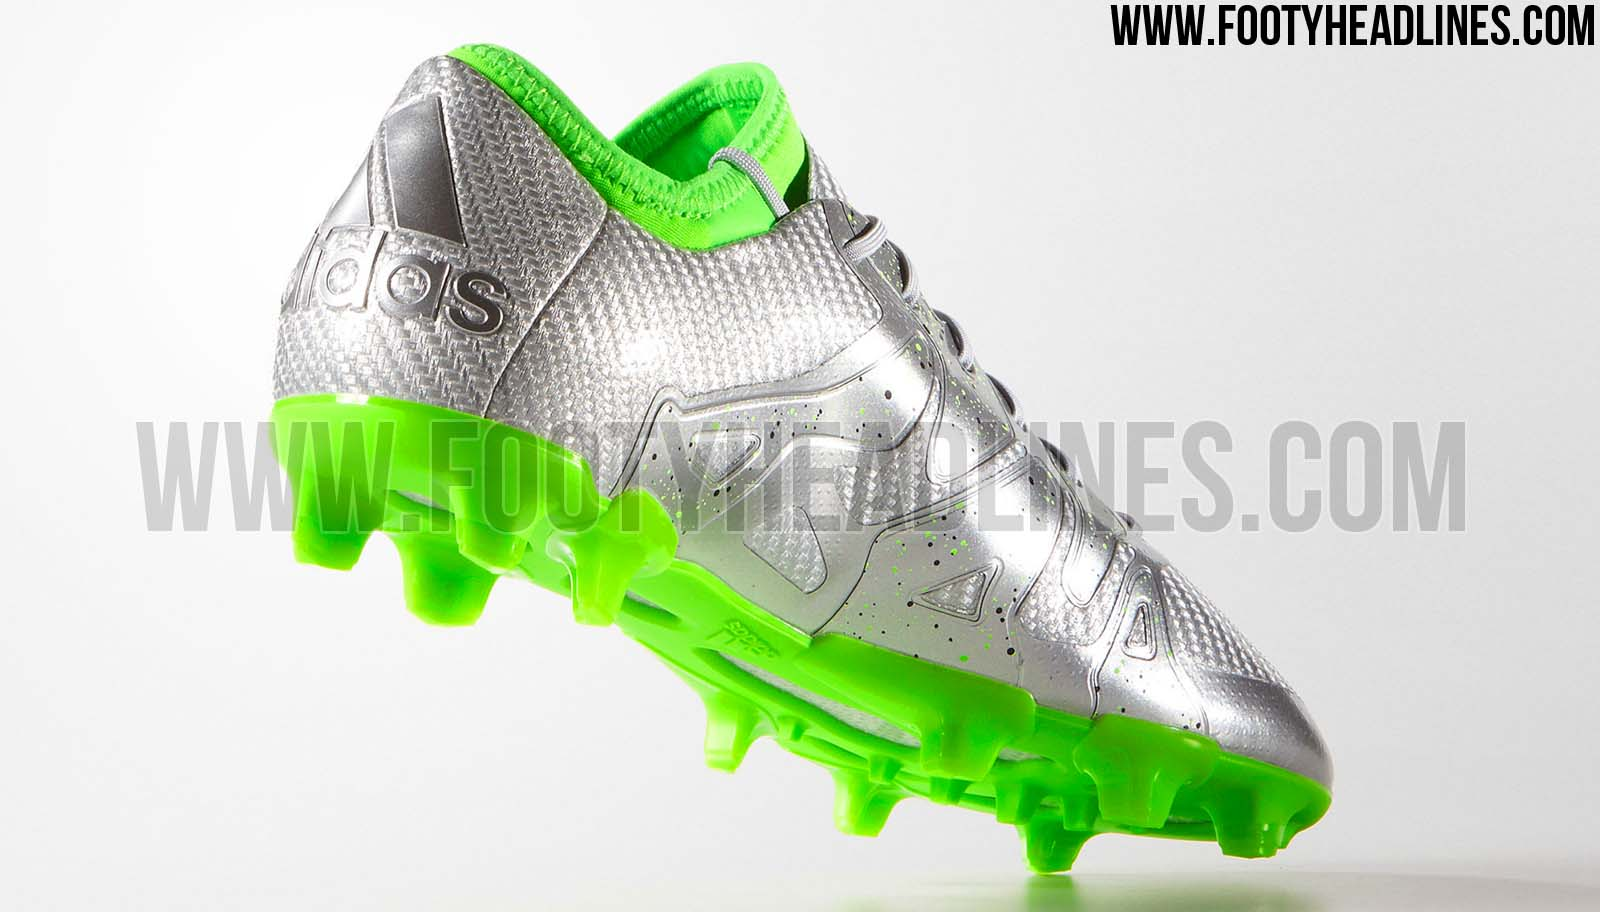 Eskolaite Chrome Adidas X 2015-2016 Boots Released